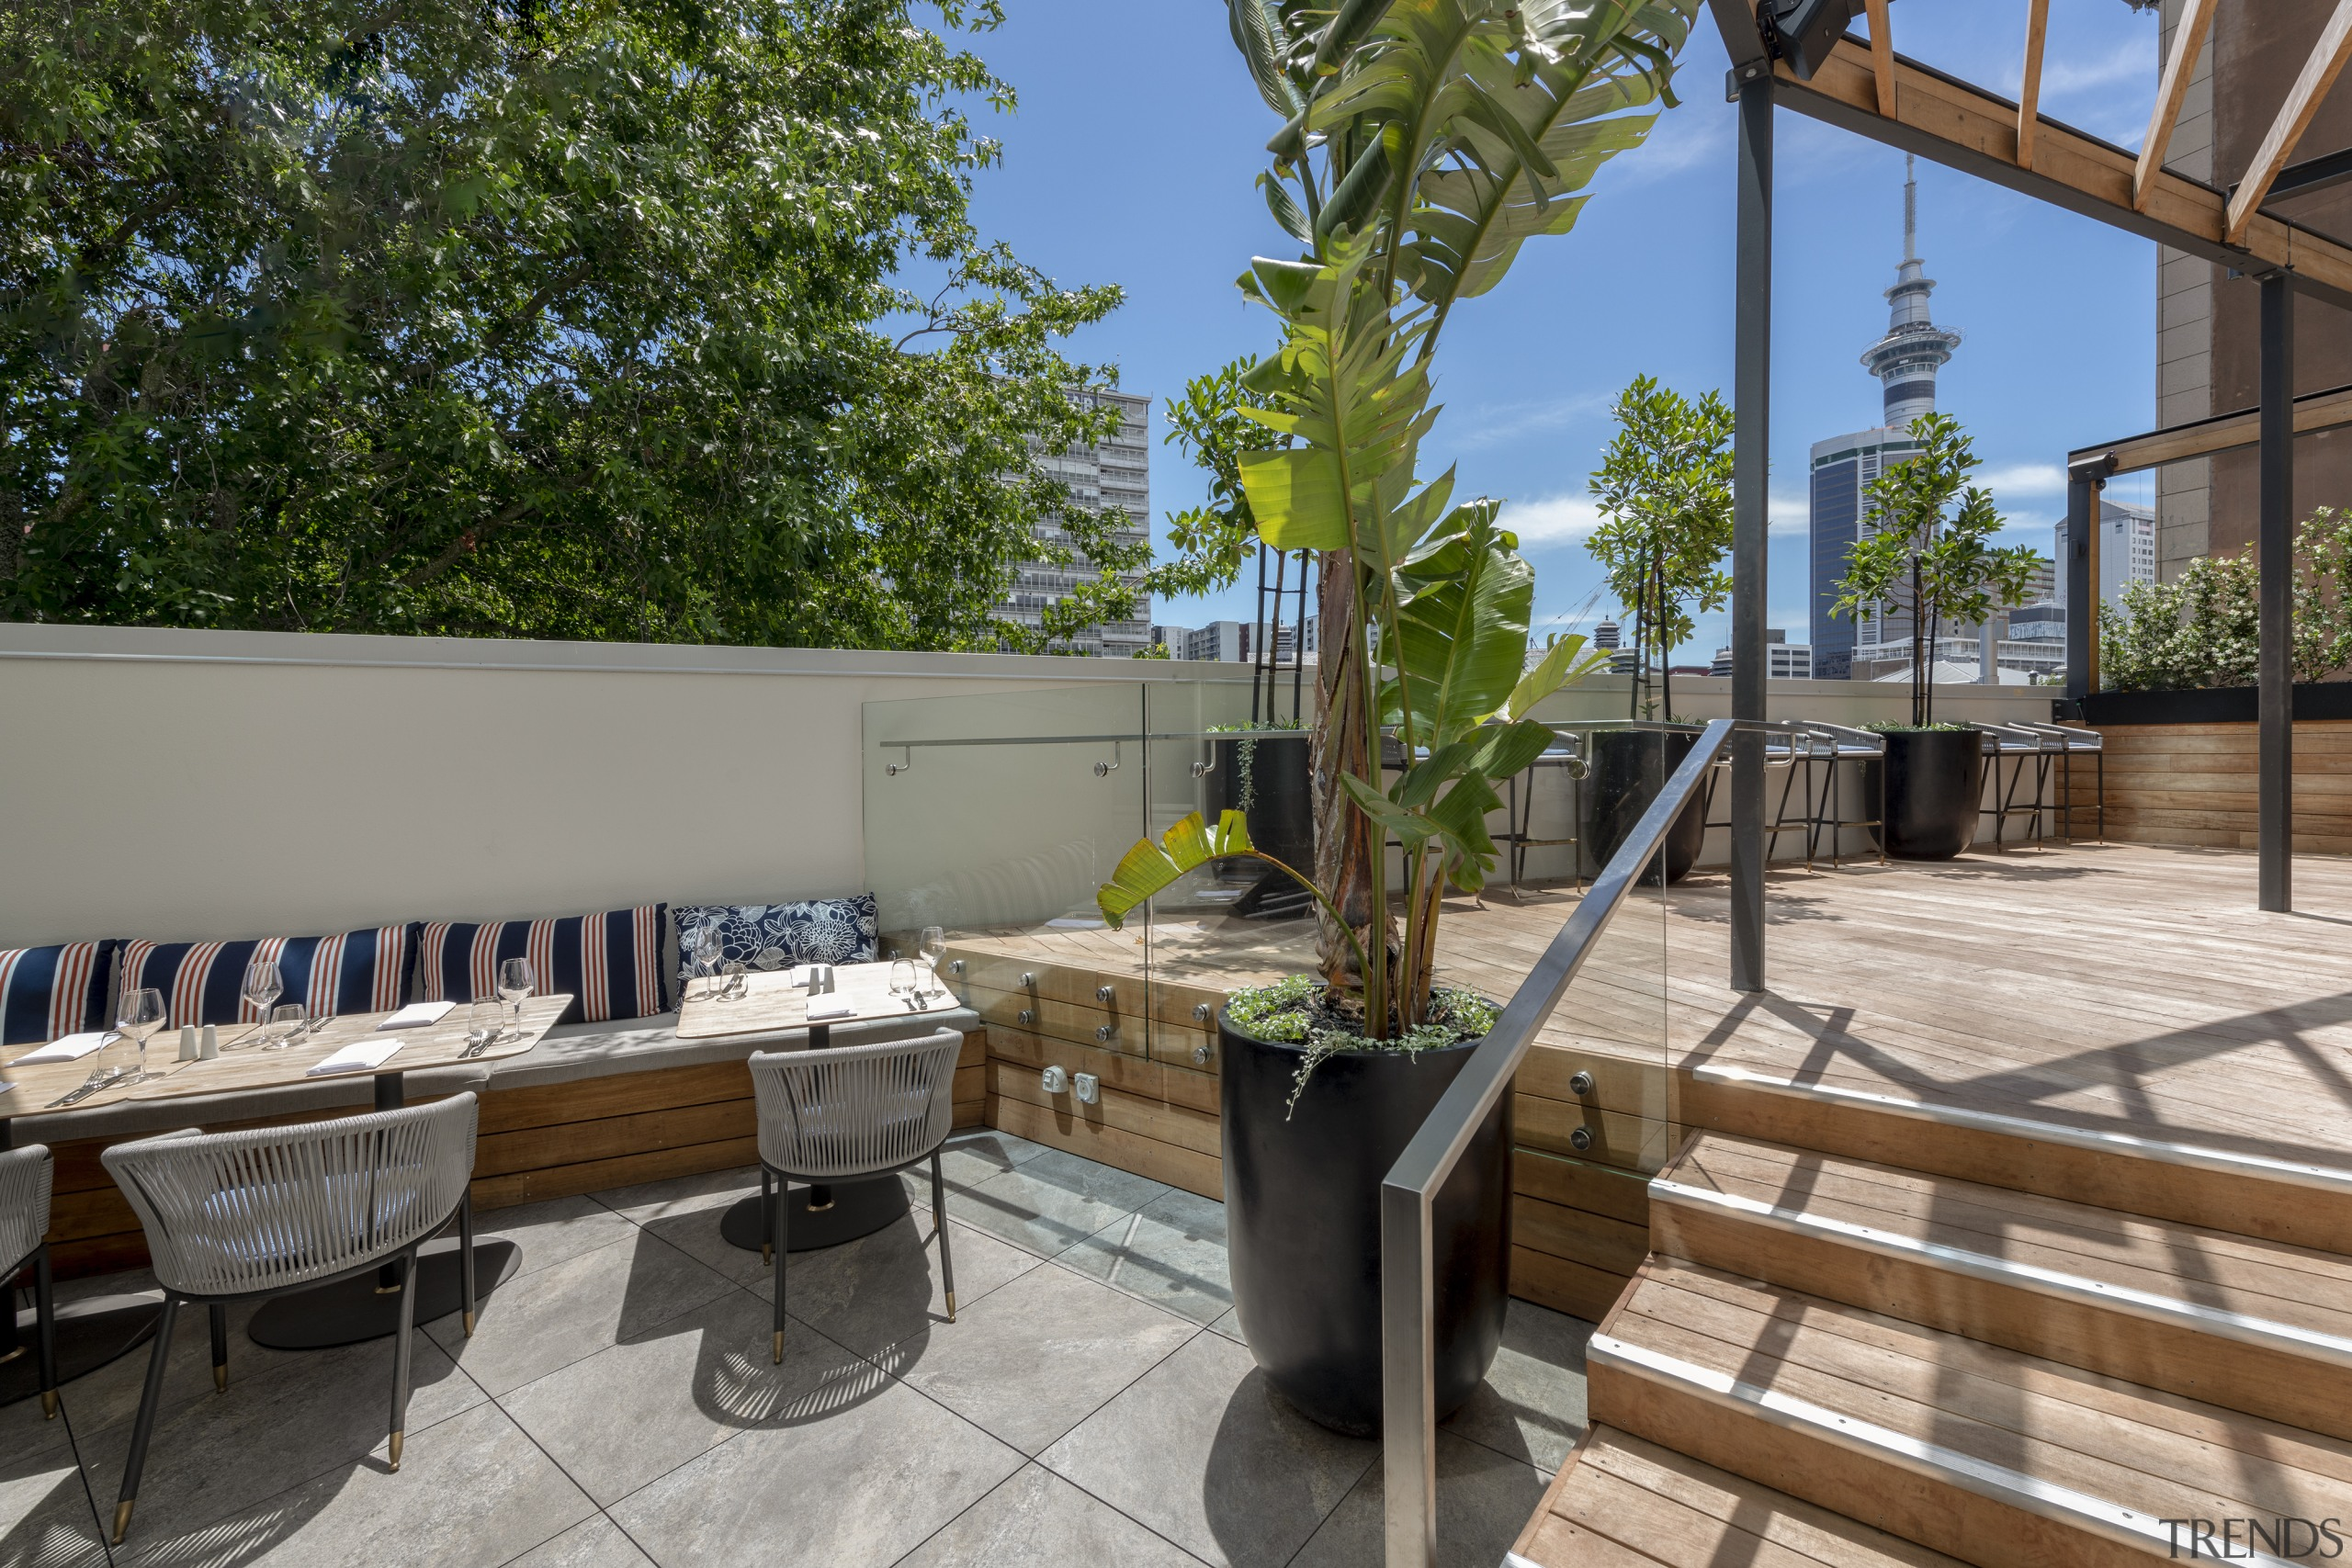 The new Queen's Head terrace at Four Points Terrace, furniture, Four Points Sheraton, Dominion Construction, Russell Property Group